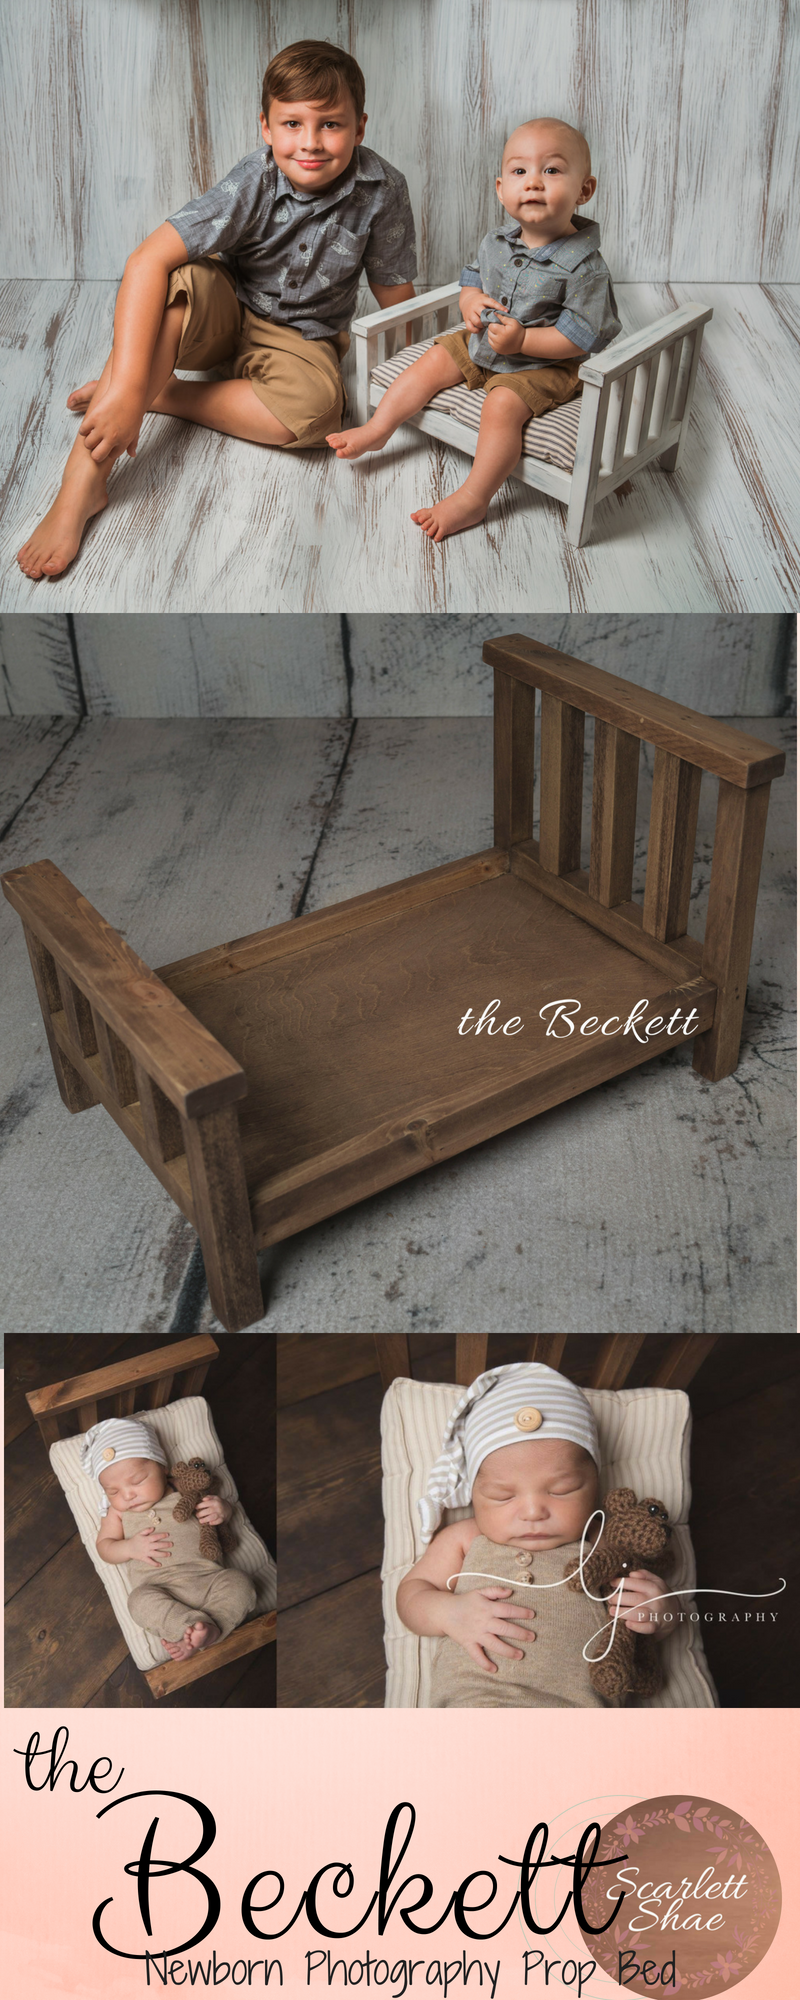 Newborn Baby Photography Handmade Wooden Bed Props Infant Bebe Fotografia Accessories Baby Boy Girl Photo Shoot Studio Bed Props Professional Design Boys' Baby Clothing